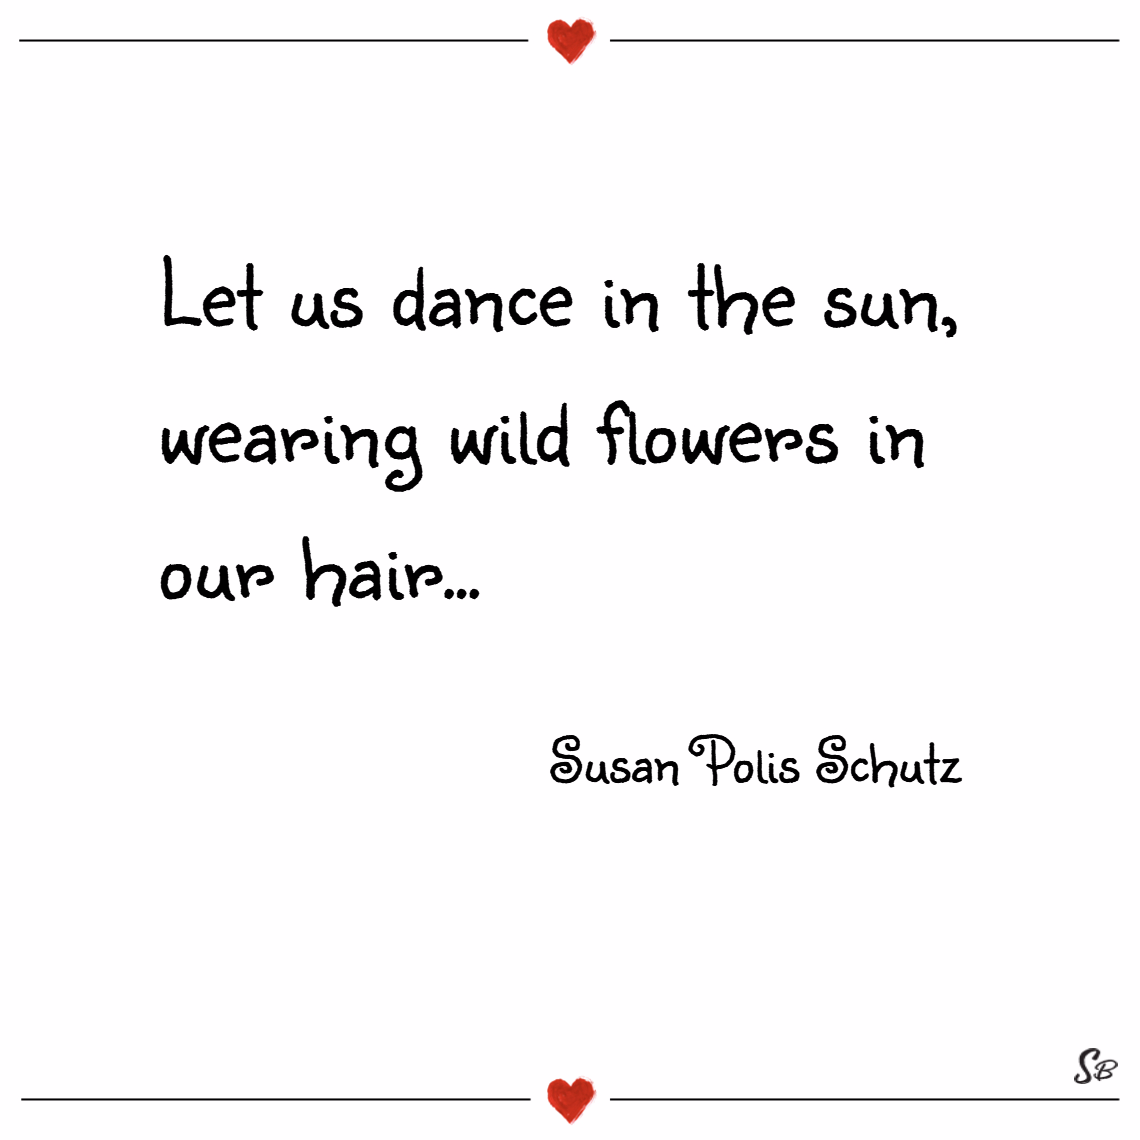 Let us dance in the sun, wearing wild flowers in our hair... – susan polis schutz